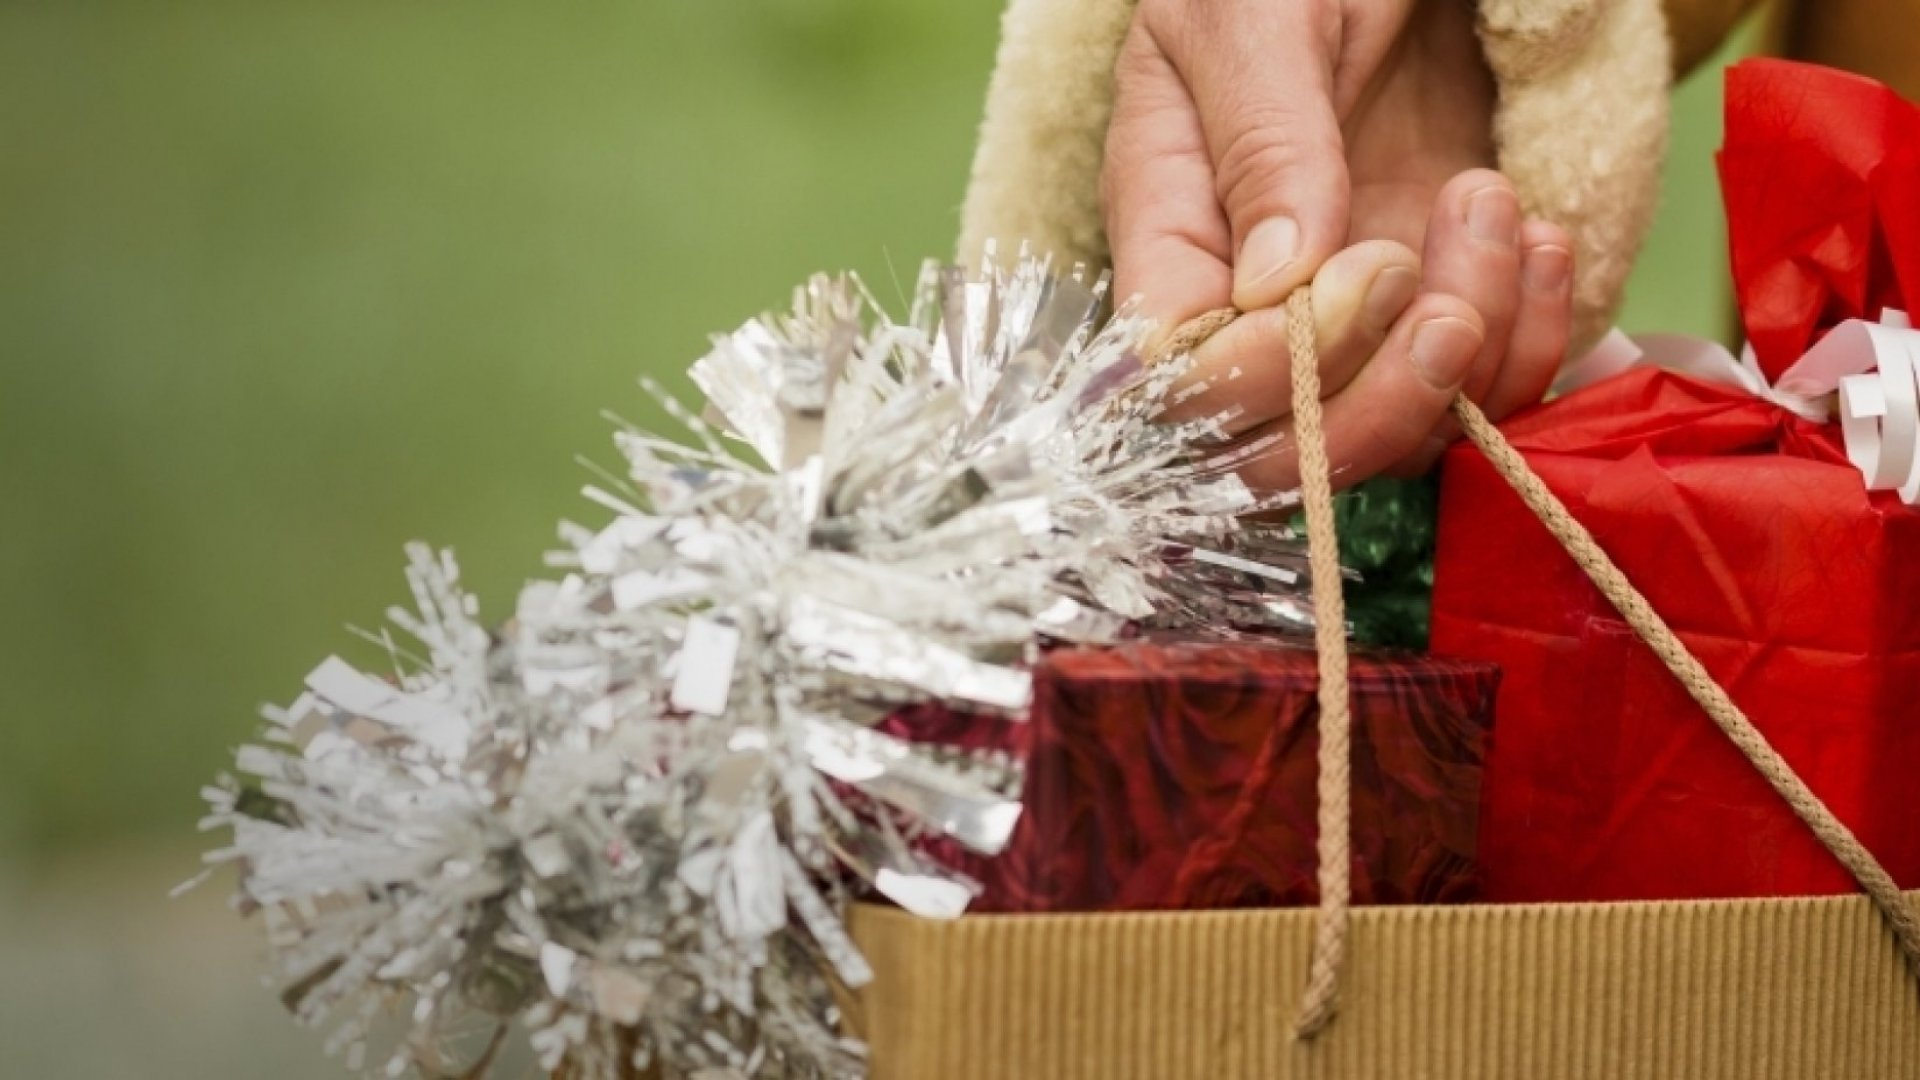 6 Easy Ways to Delight Your Customers This Holiday Season